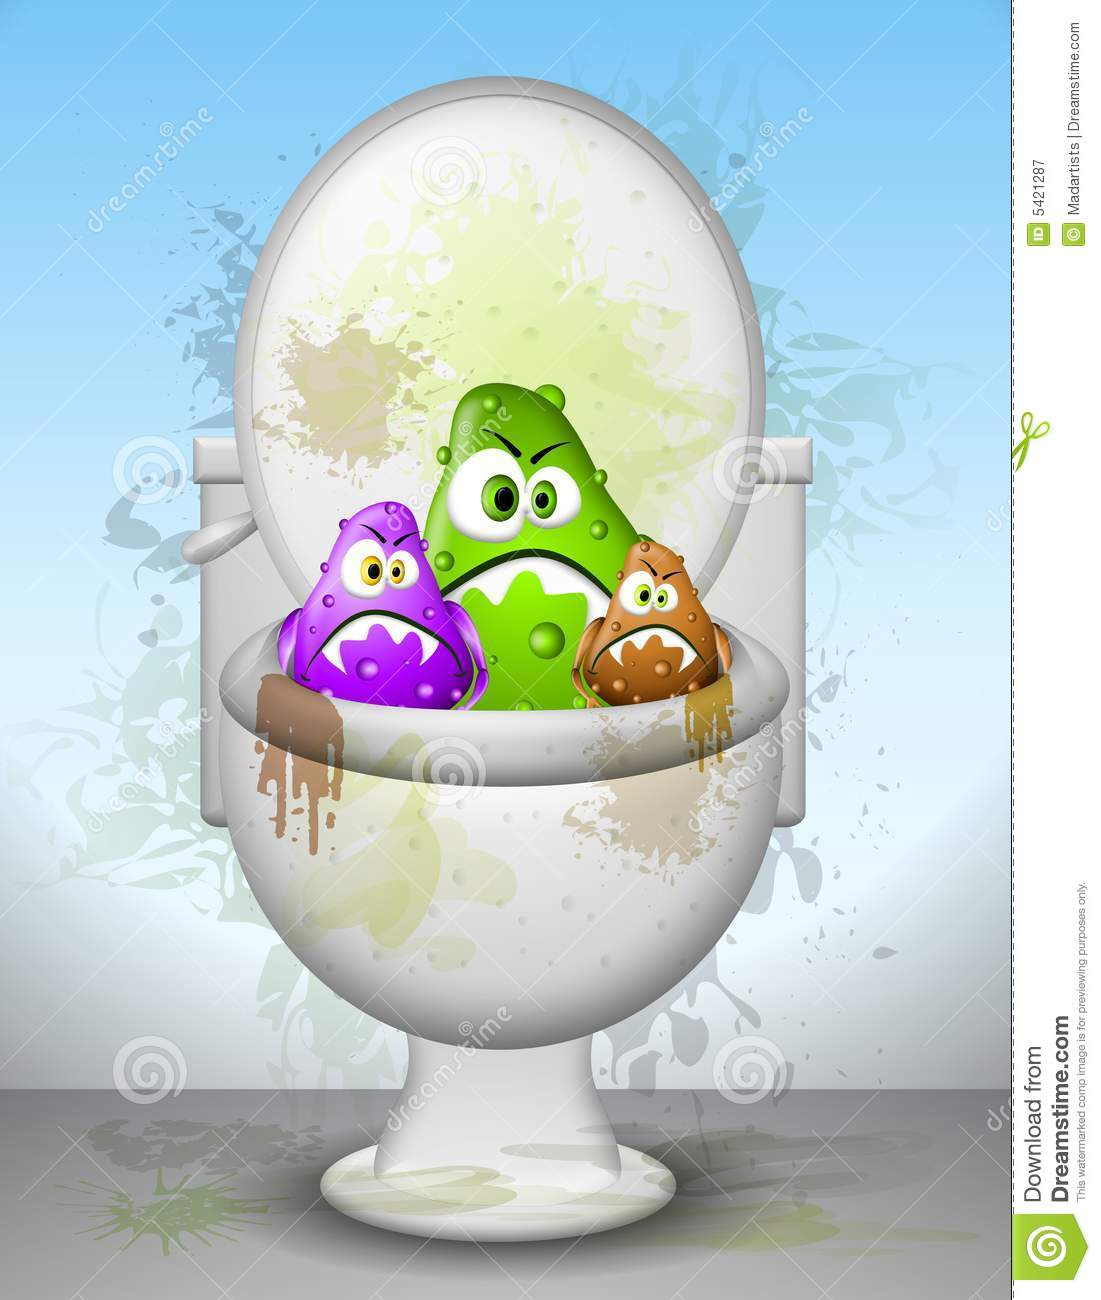 Ugly Dirty Toilet Bowl Germs Royalty Free Stock Photography Image